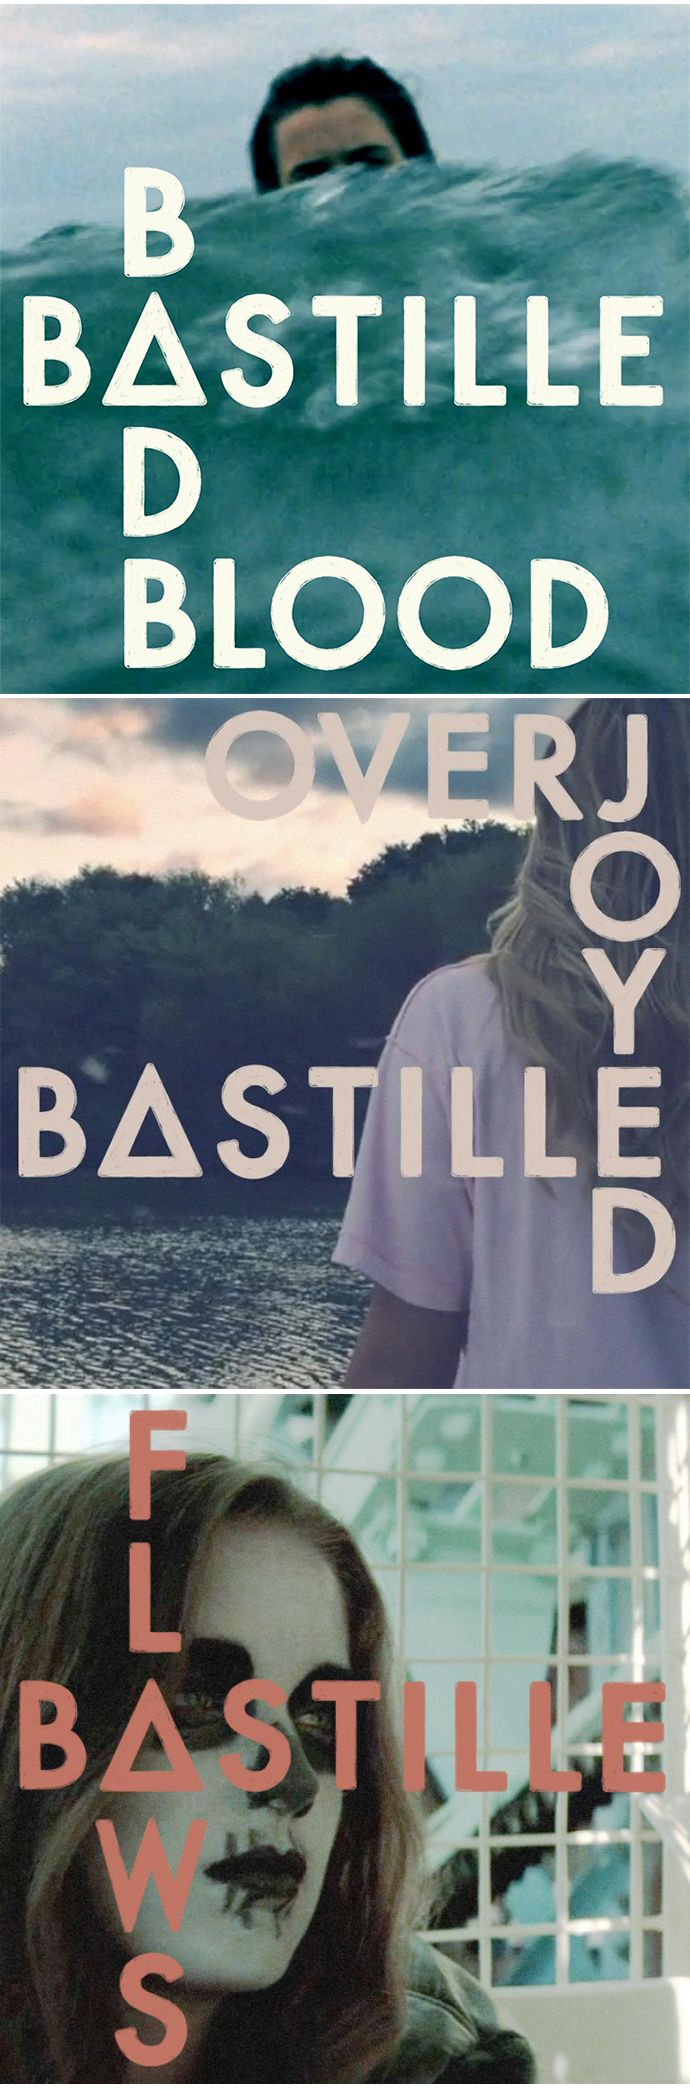 bastille bad blood album soundcloud